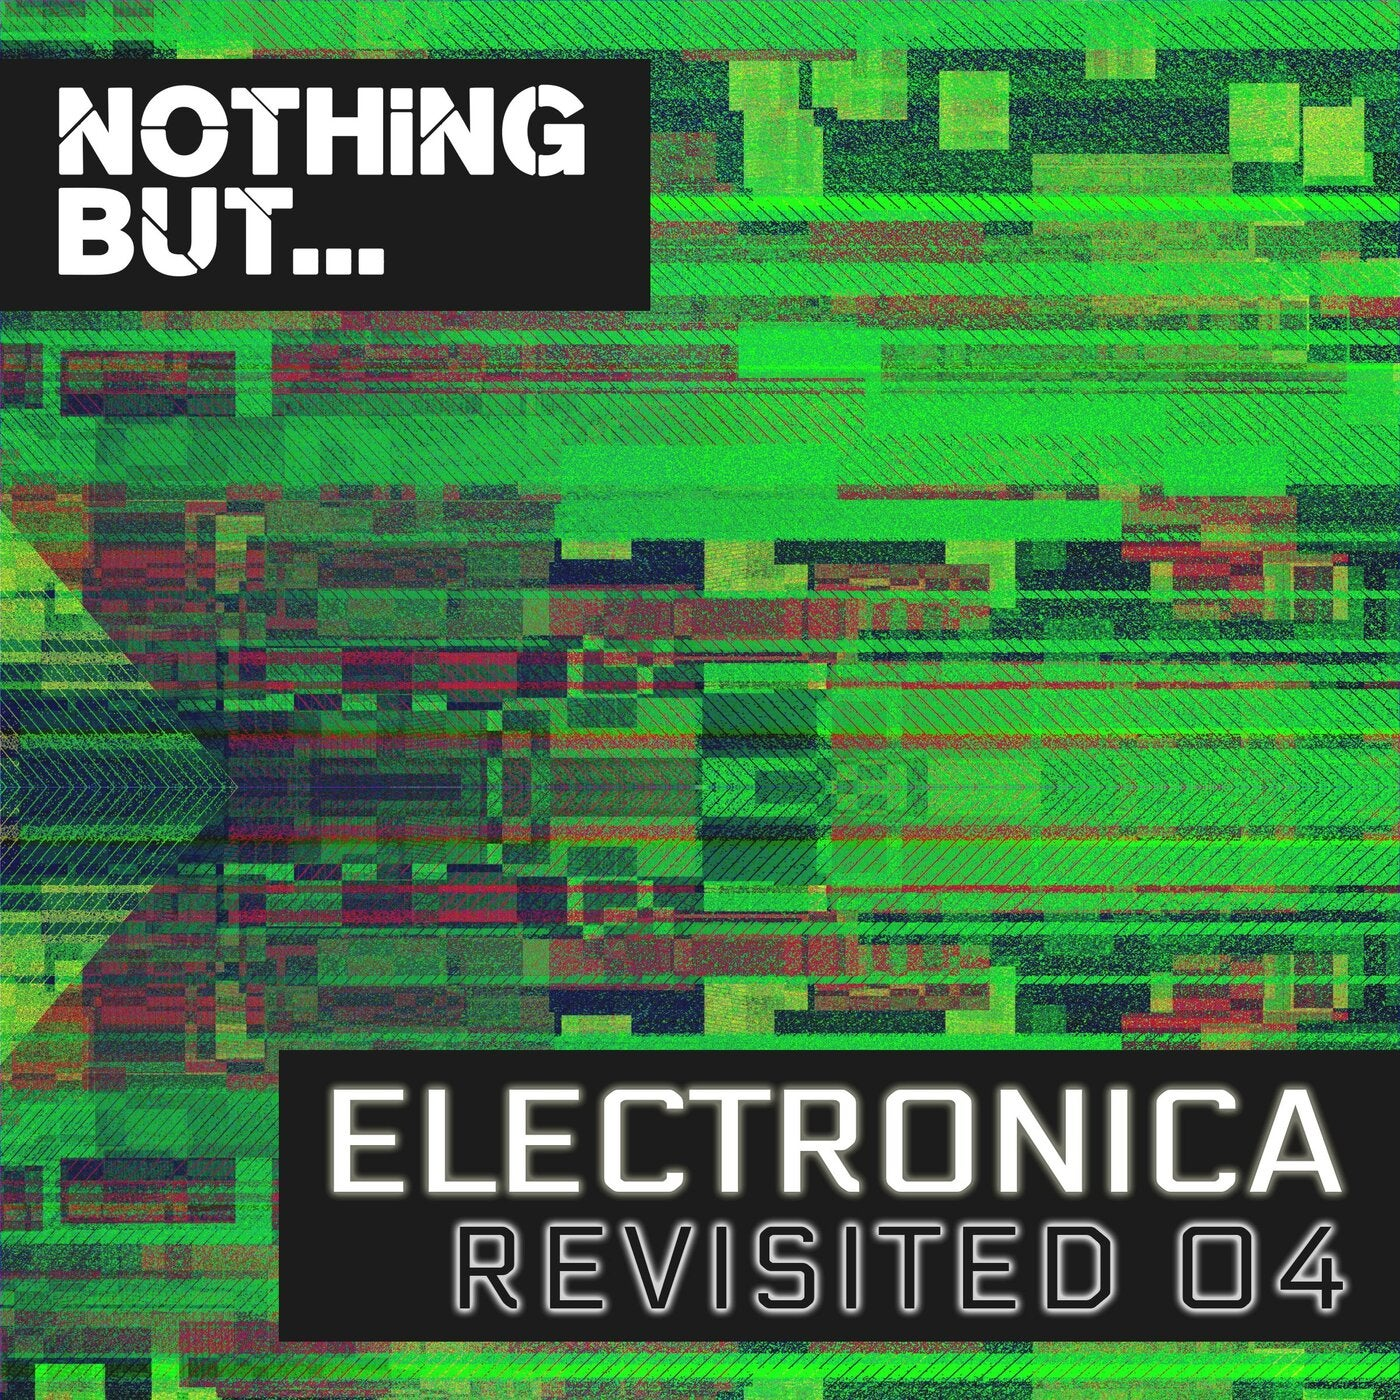 VA - Nothing But... Electronica Revisited, Vol. 04 [NBER04]